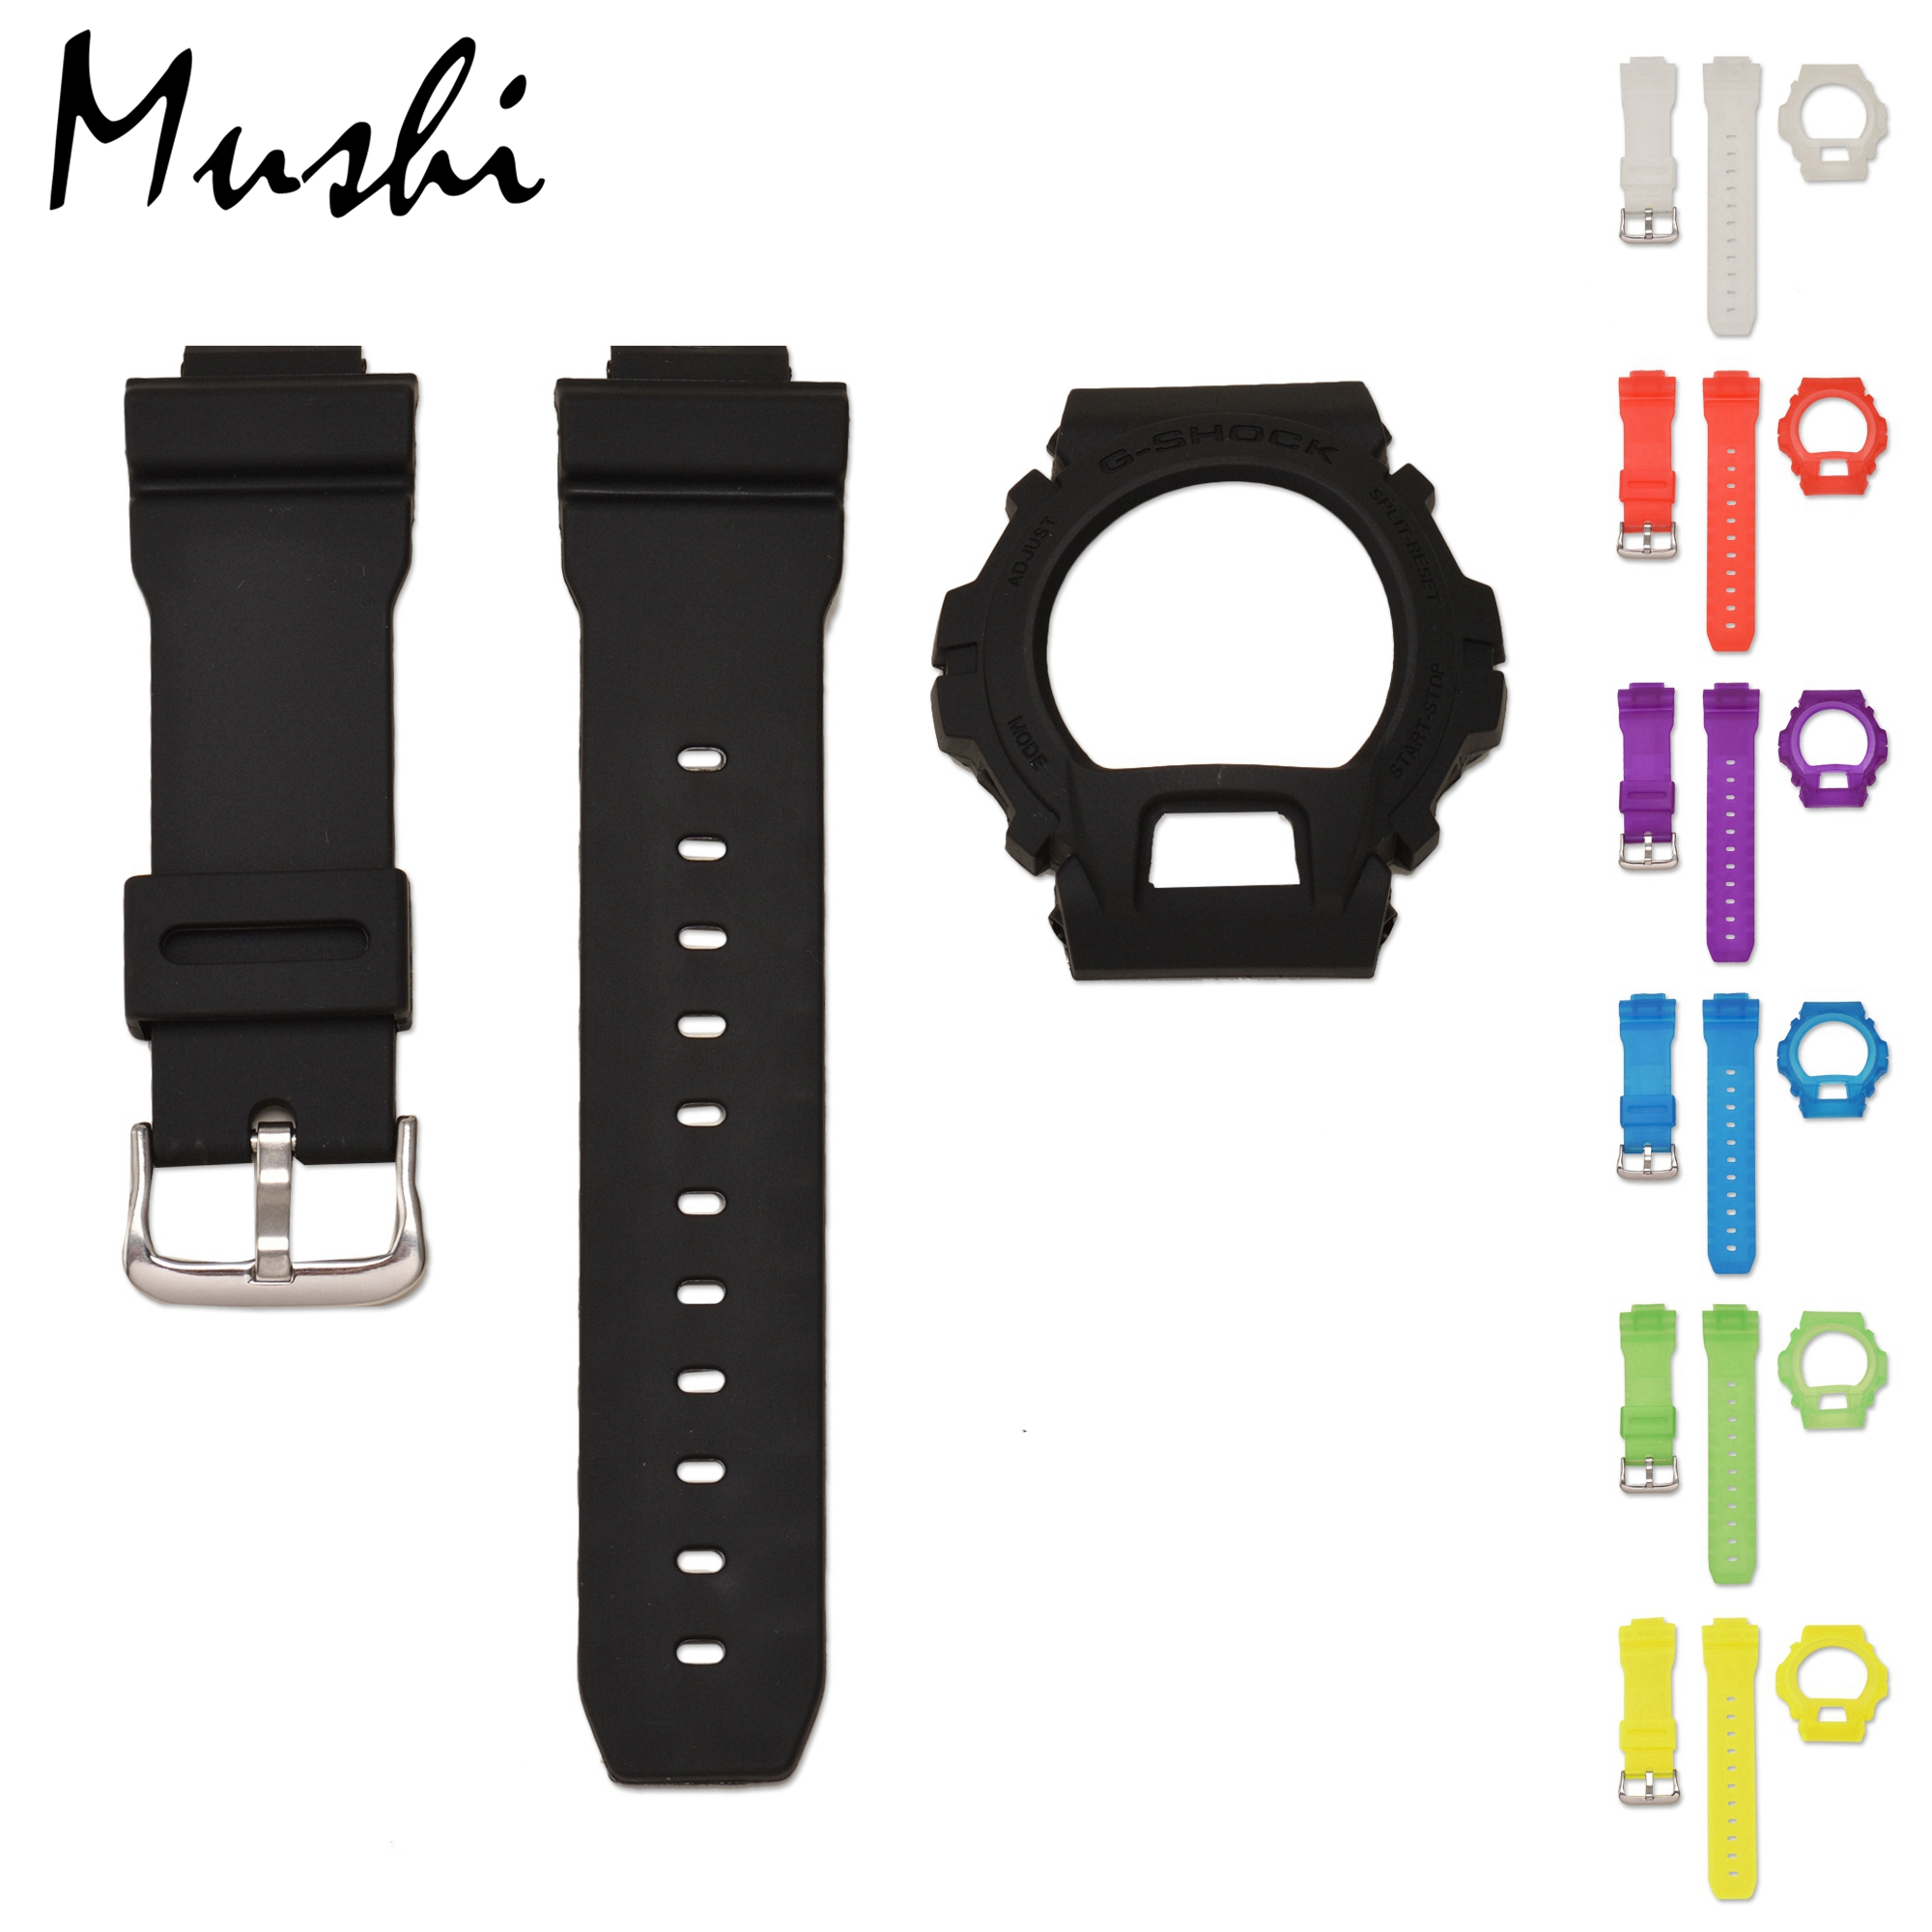 Mushi Rubber For Casio DW 6900 Black Translucent Blue Yellow Red Green Violet Strap Pin Buckle Watch Band Watch Case With Tool